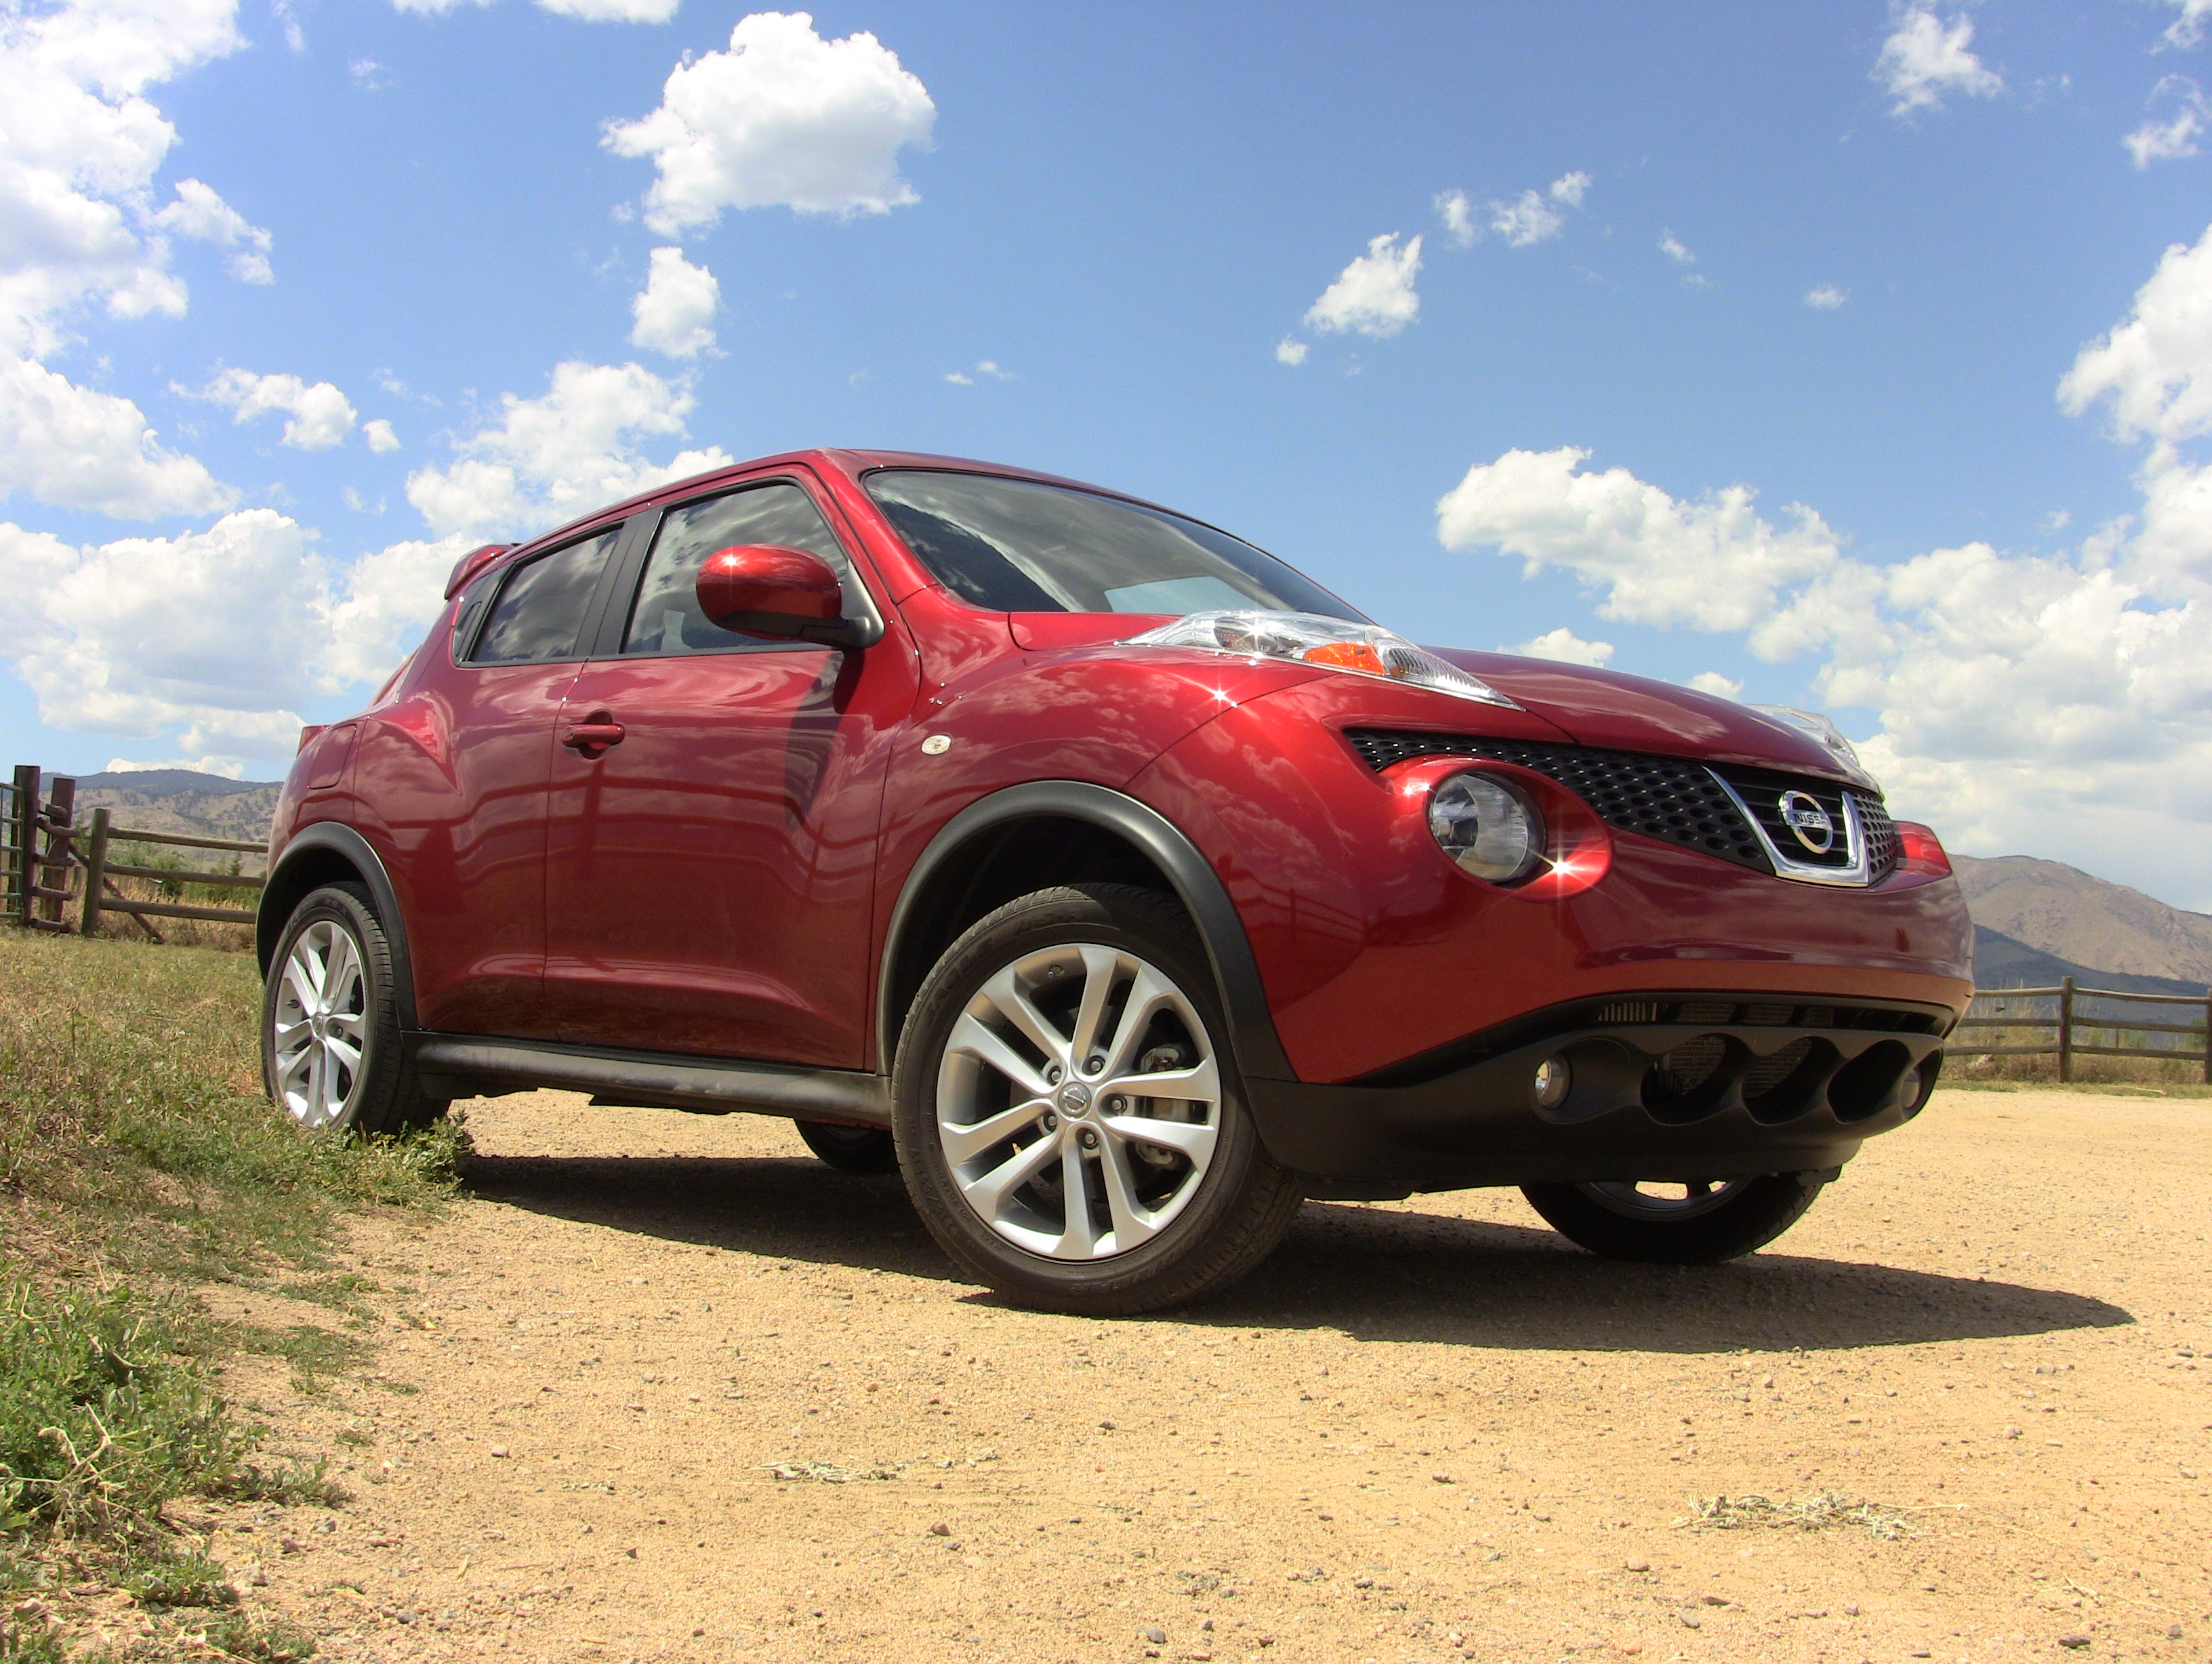 Video review: Is the Nissan Juke the cutest or ugliest new car in ...